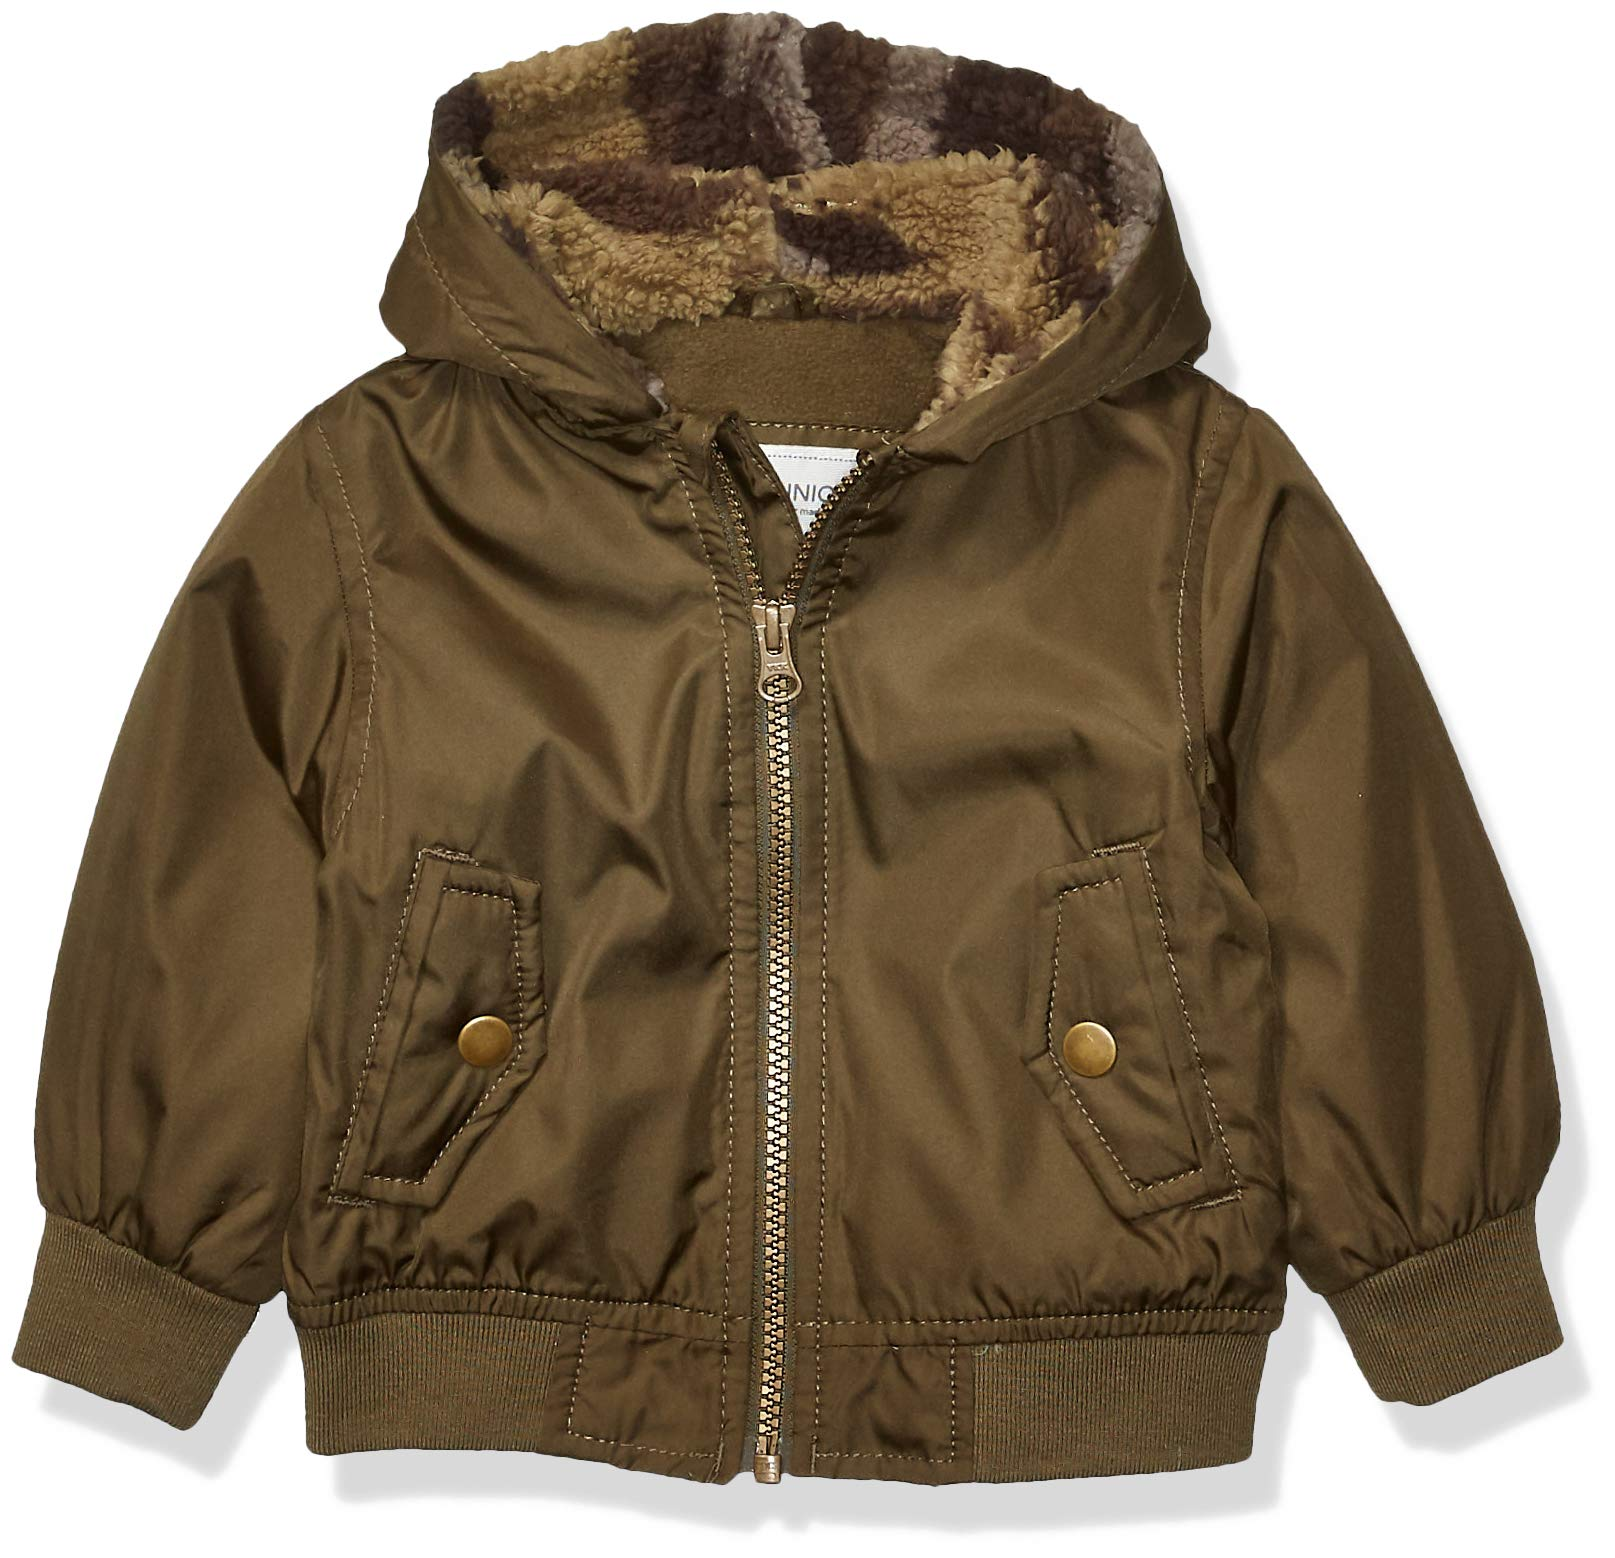 Carter's Baby Boys Fleece Lined Bomber Jacket, Rustic Olive, 18 Months by Carter's